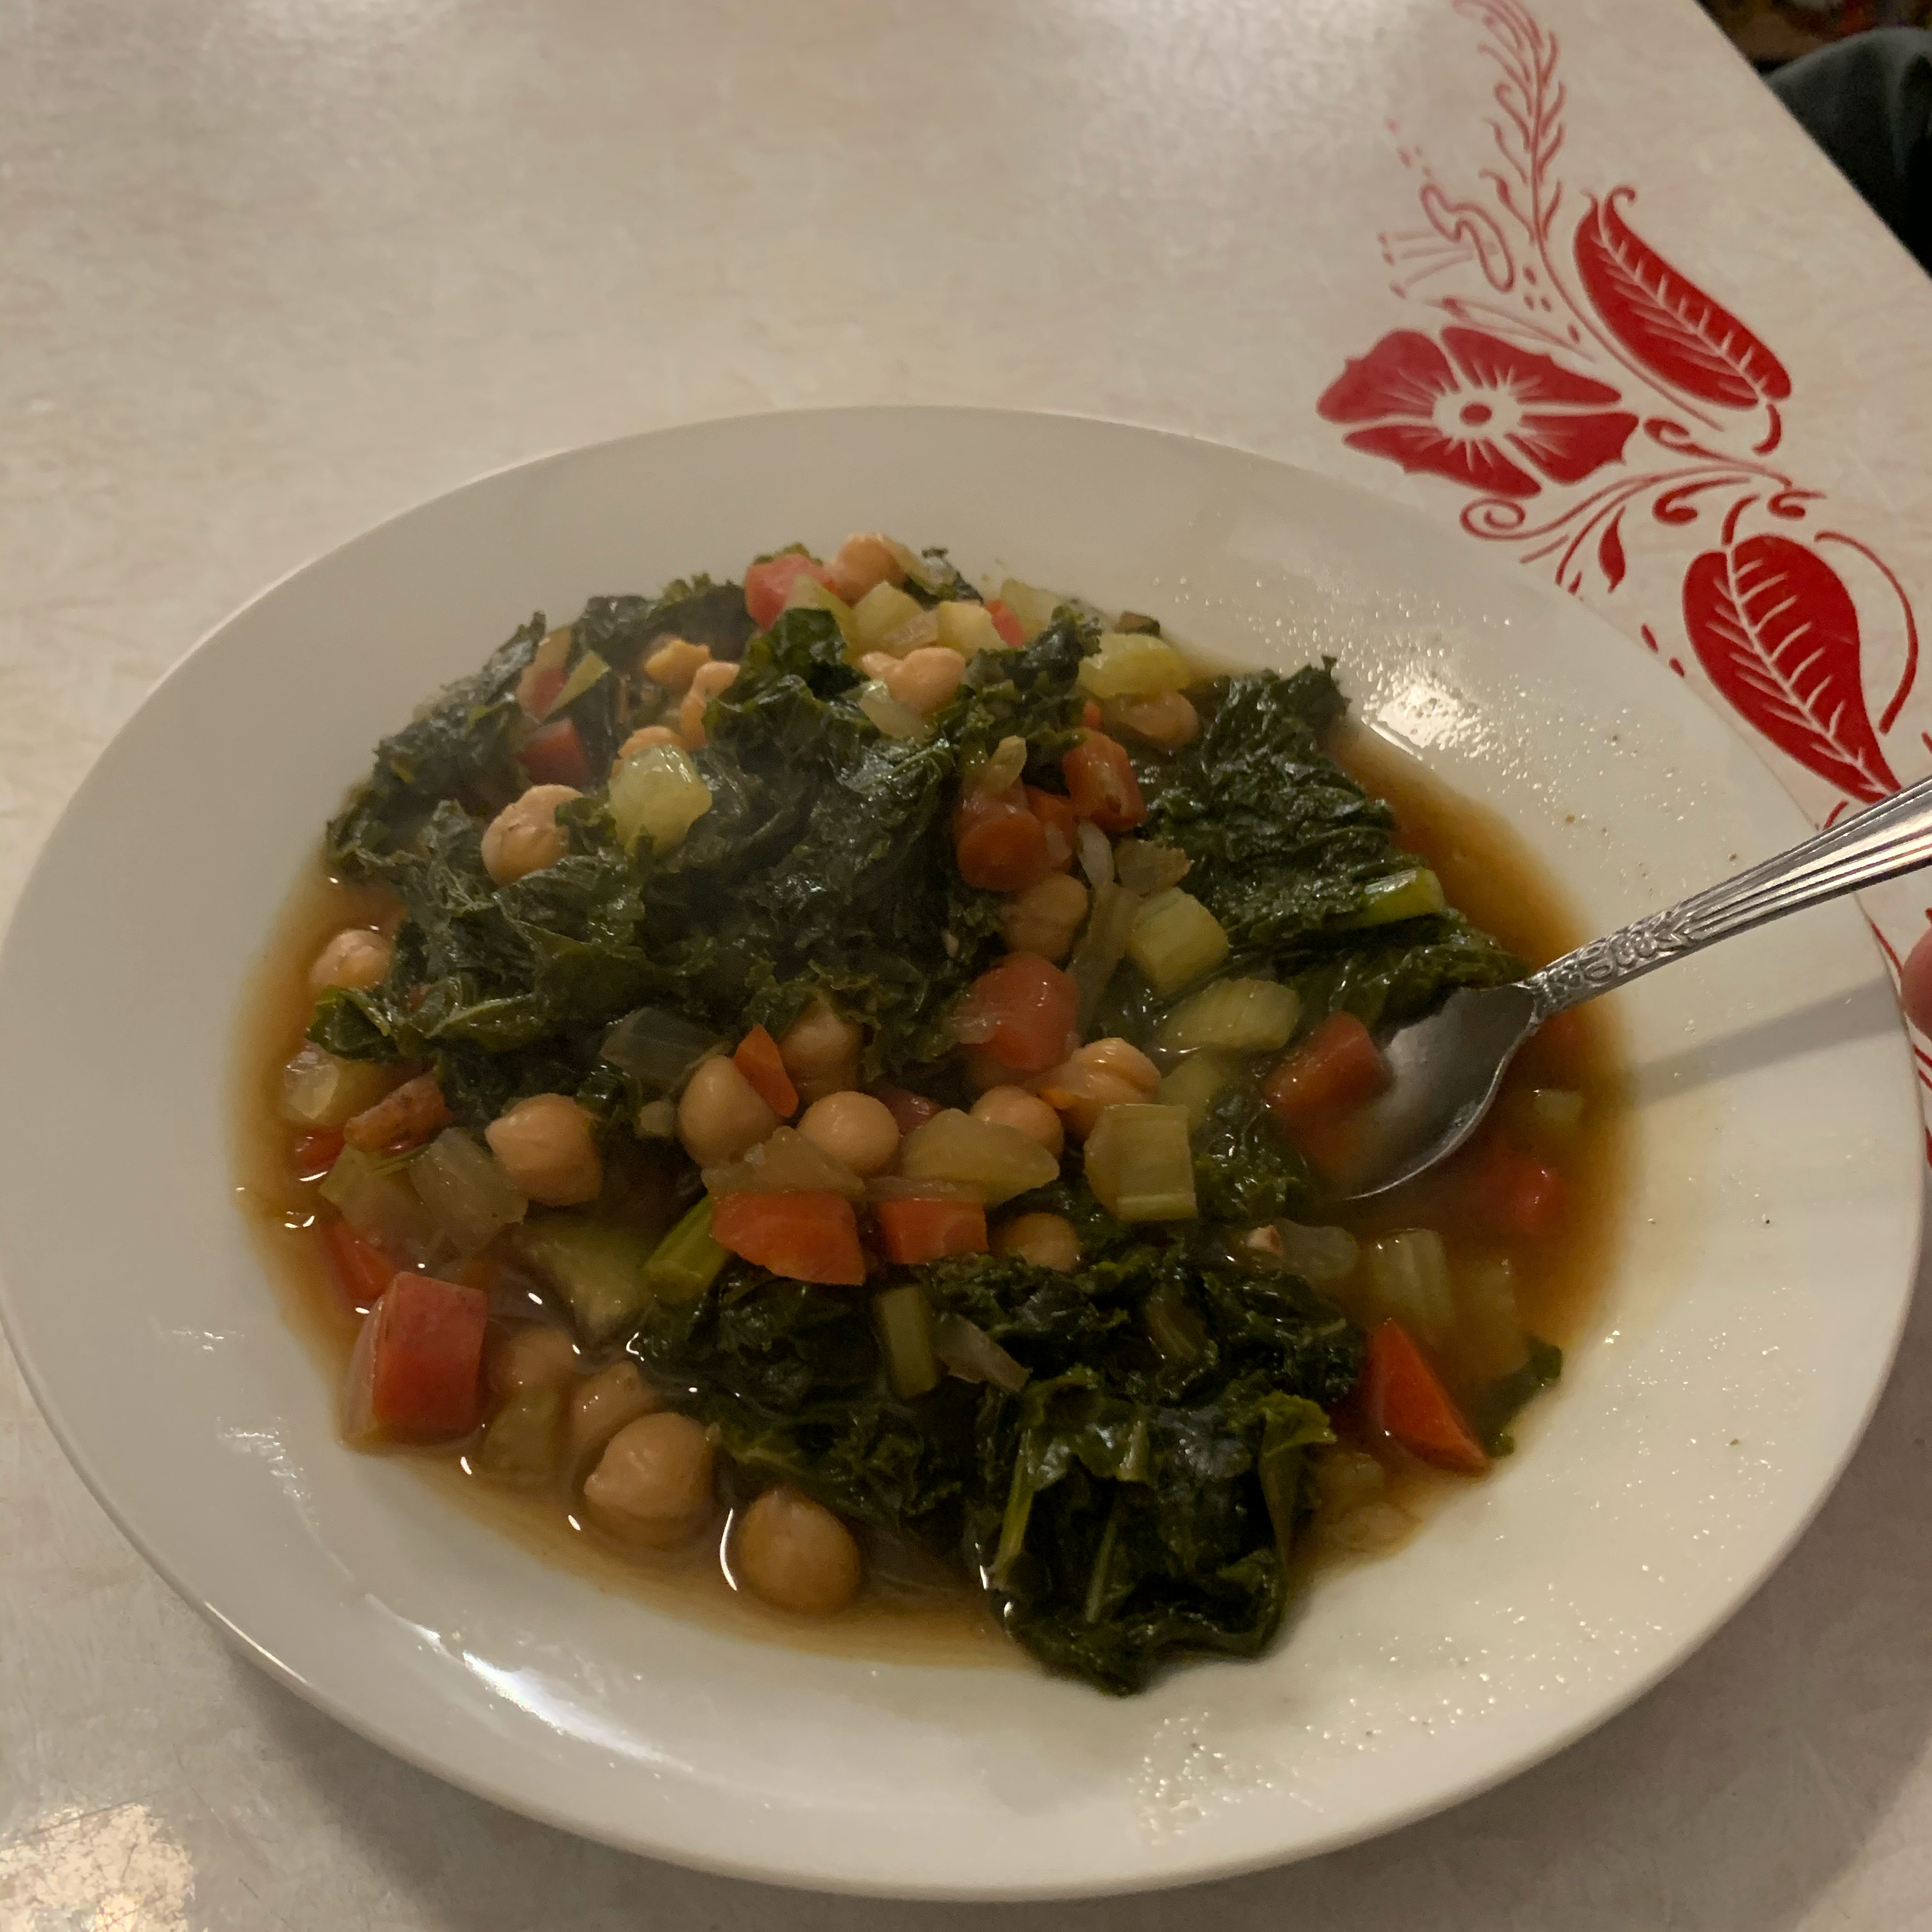 April's Spicy Chickpea Soup with Kale hildy